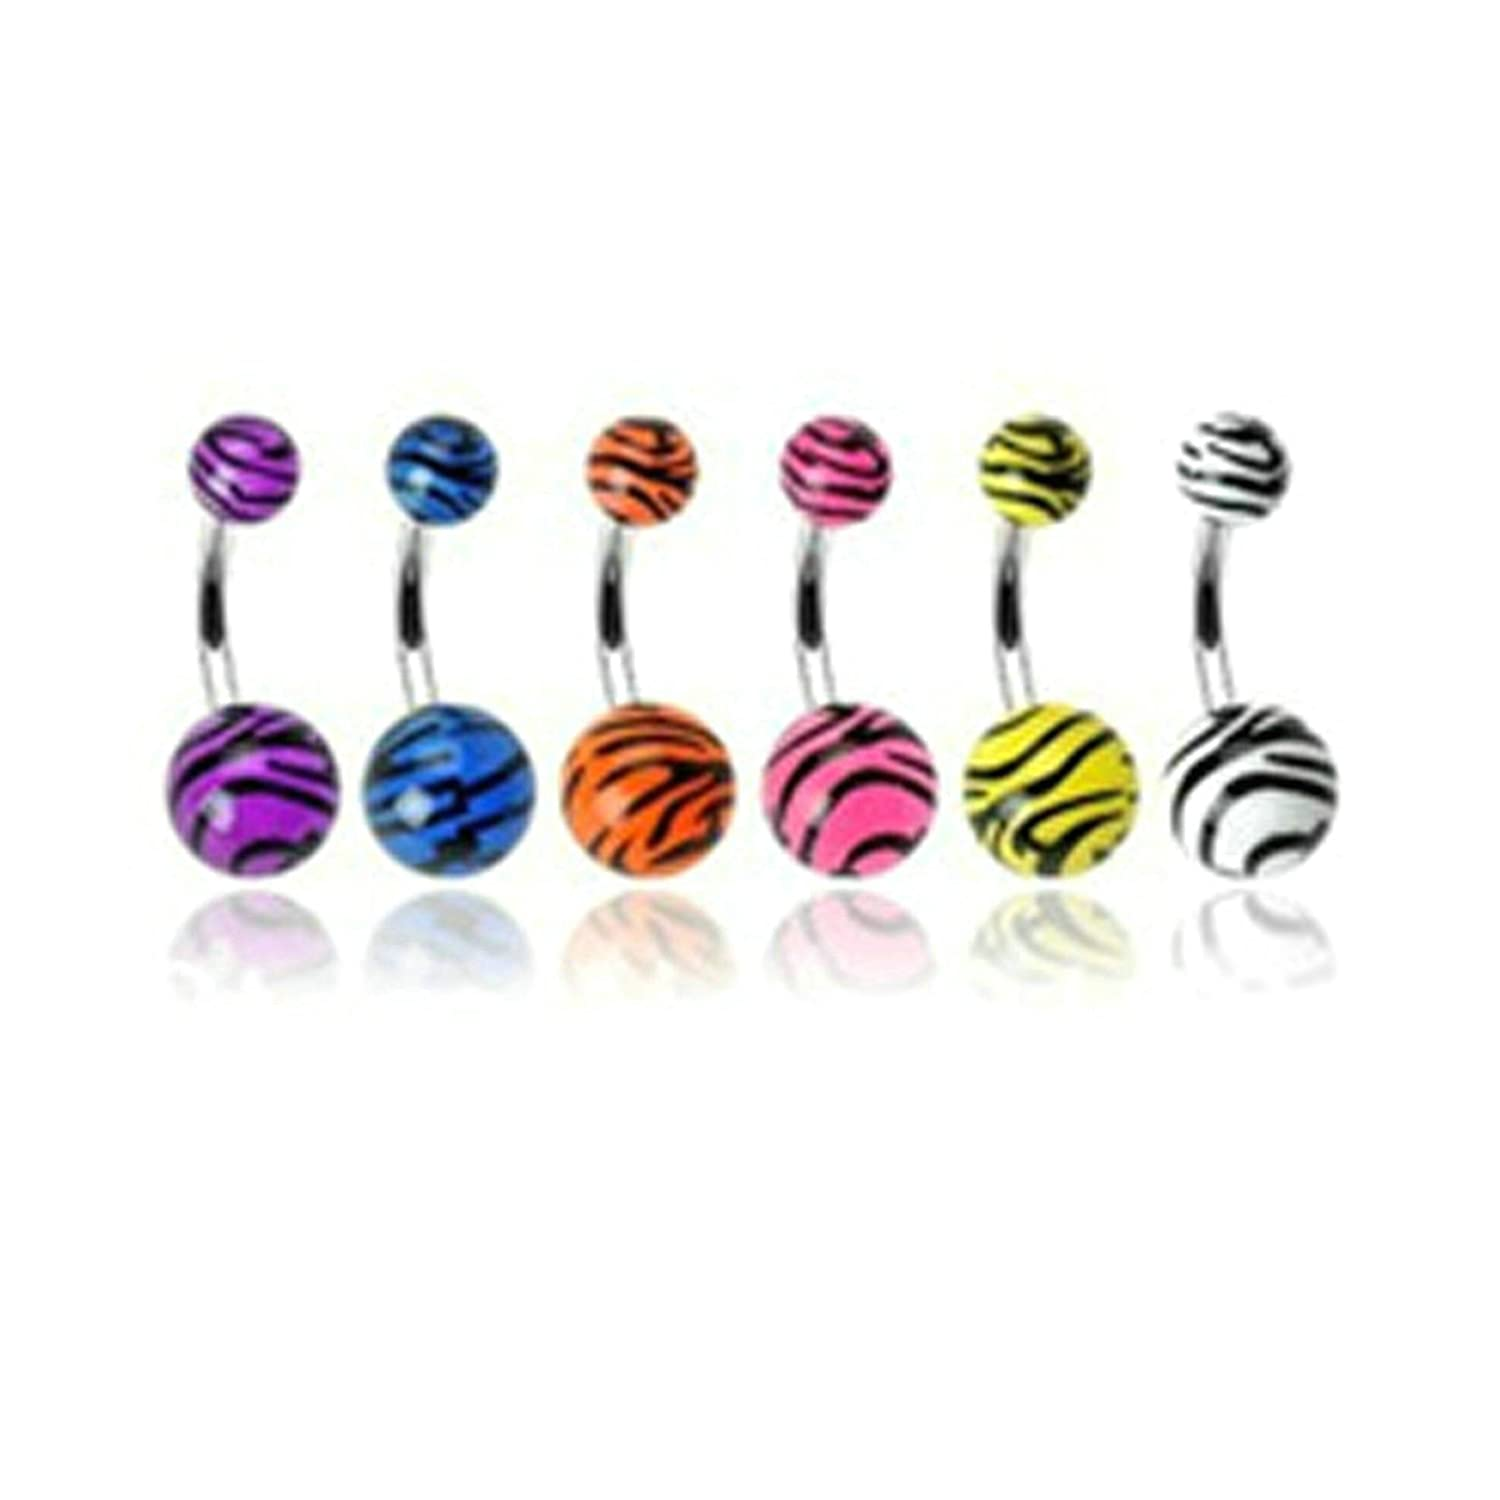 Aooaz Belly Button Piercing Rings Stainless Steel Double Bead Zebra Pattern 1 Set Body Piercing Colorful